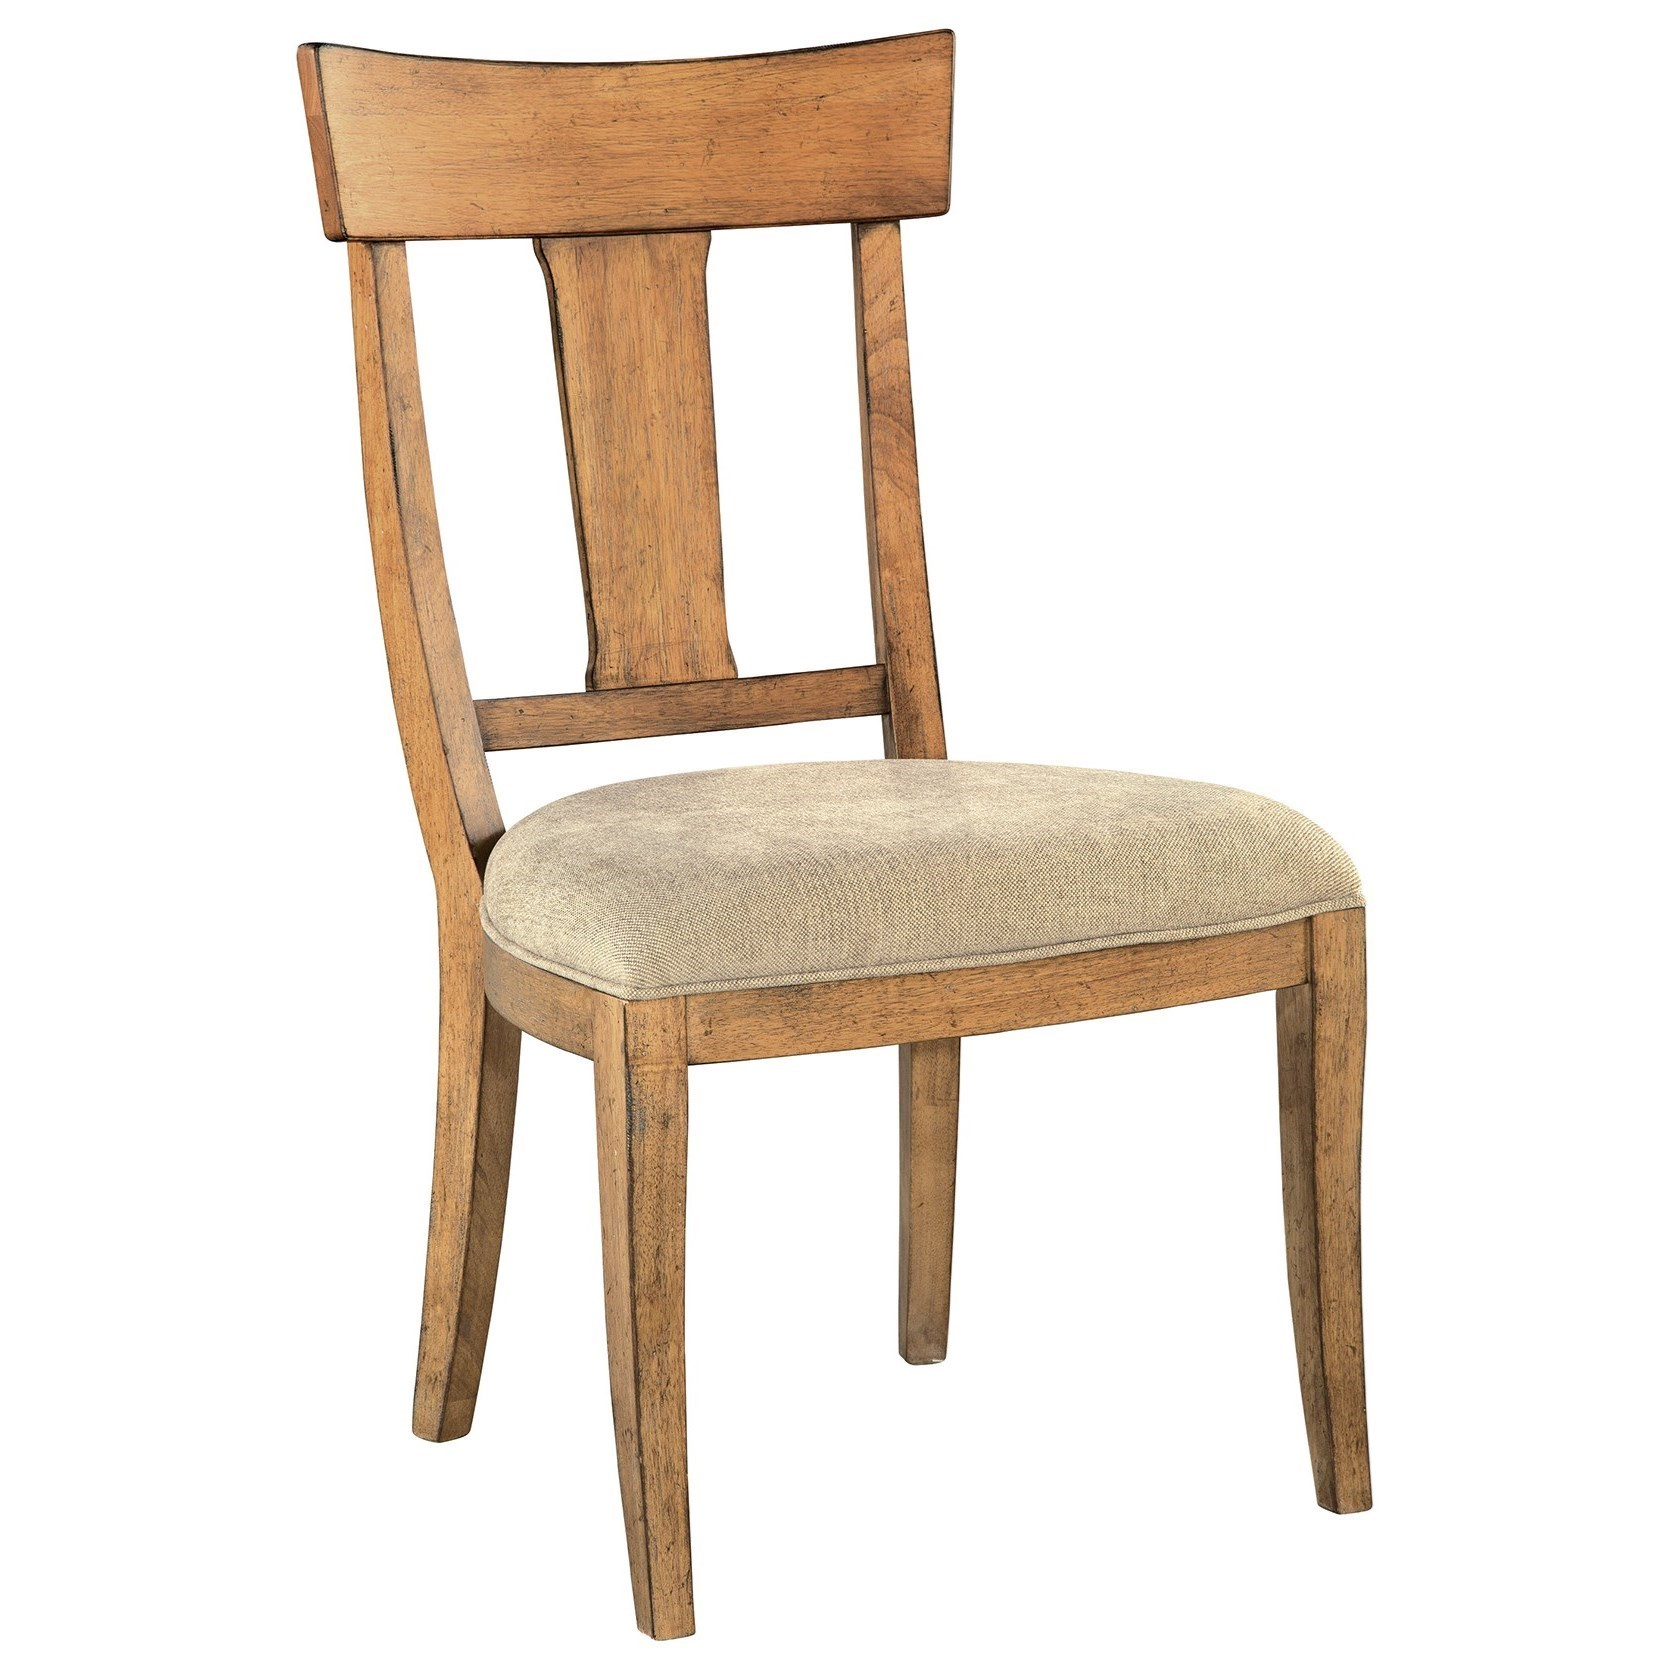 Wood T-Back Side Chair with Upholstered Seat